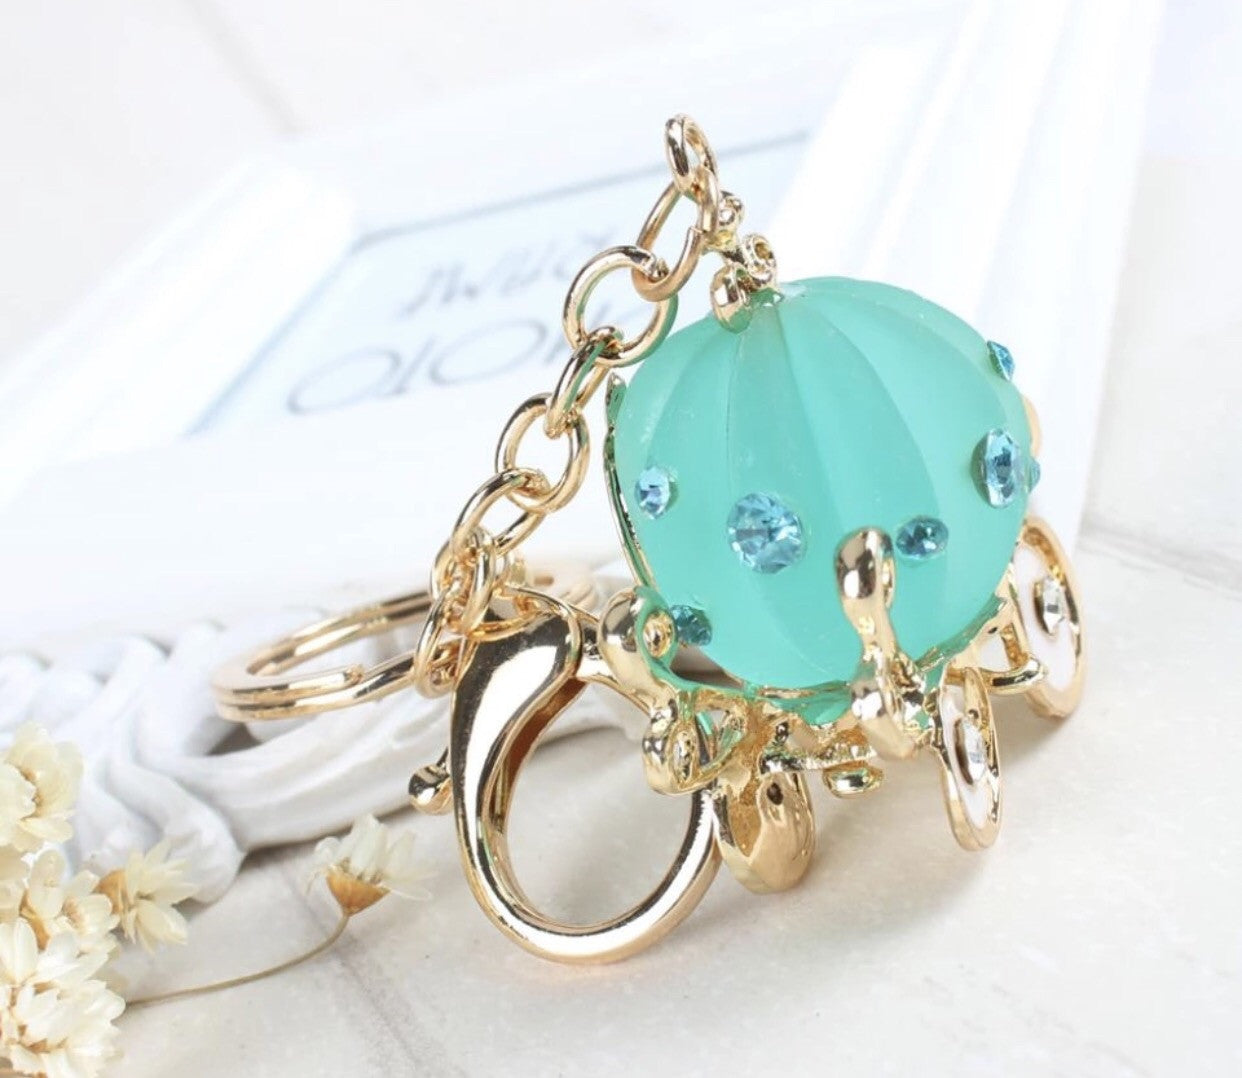 Teal color princess carriage bag charm keychain